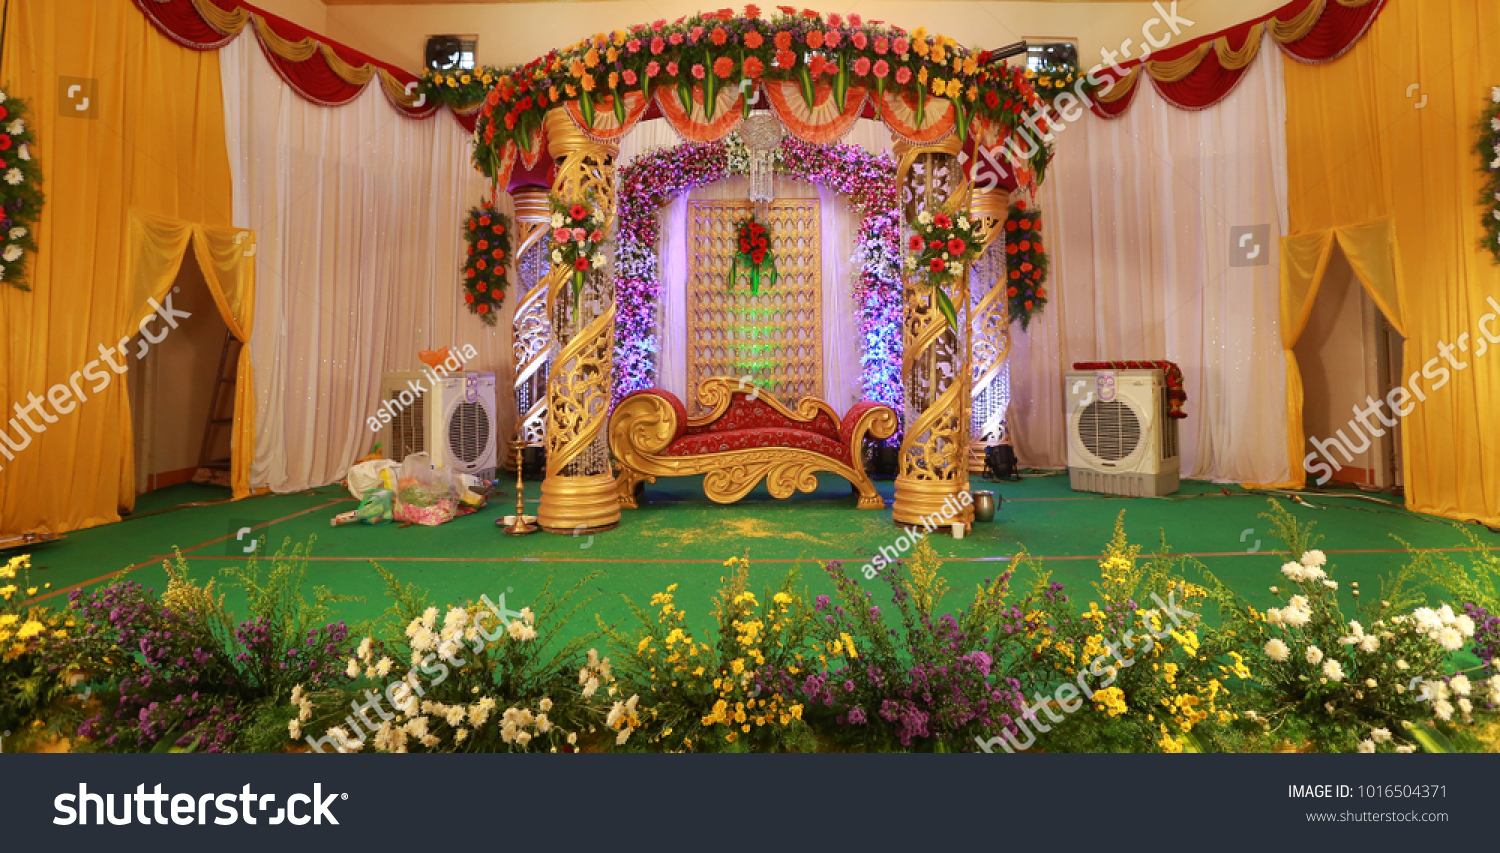 Wedding Stage Decoration Flowers Stock Photo Edit Now 1016504371